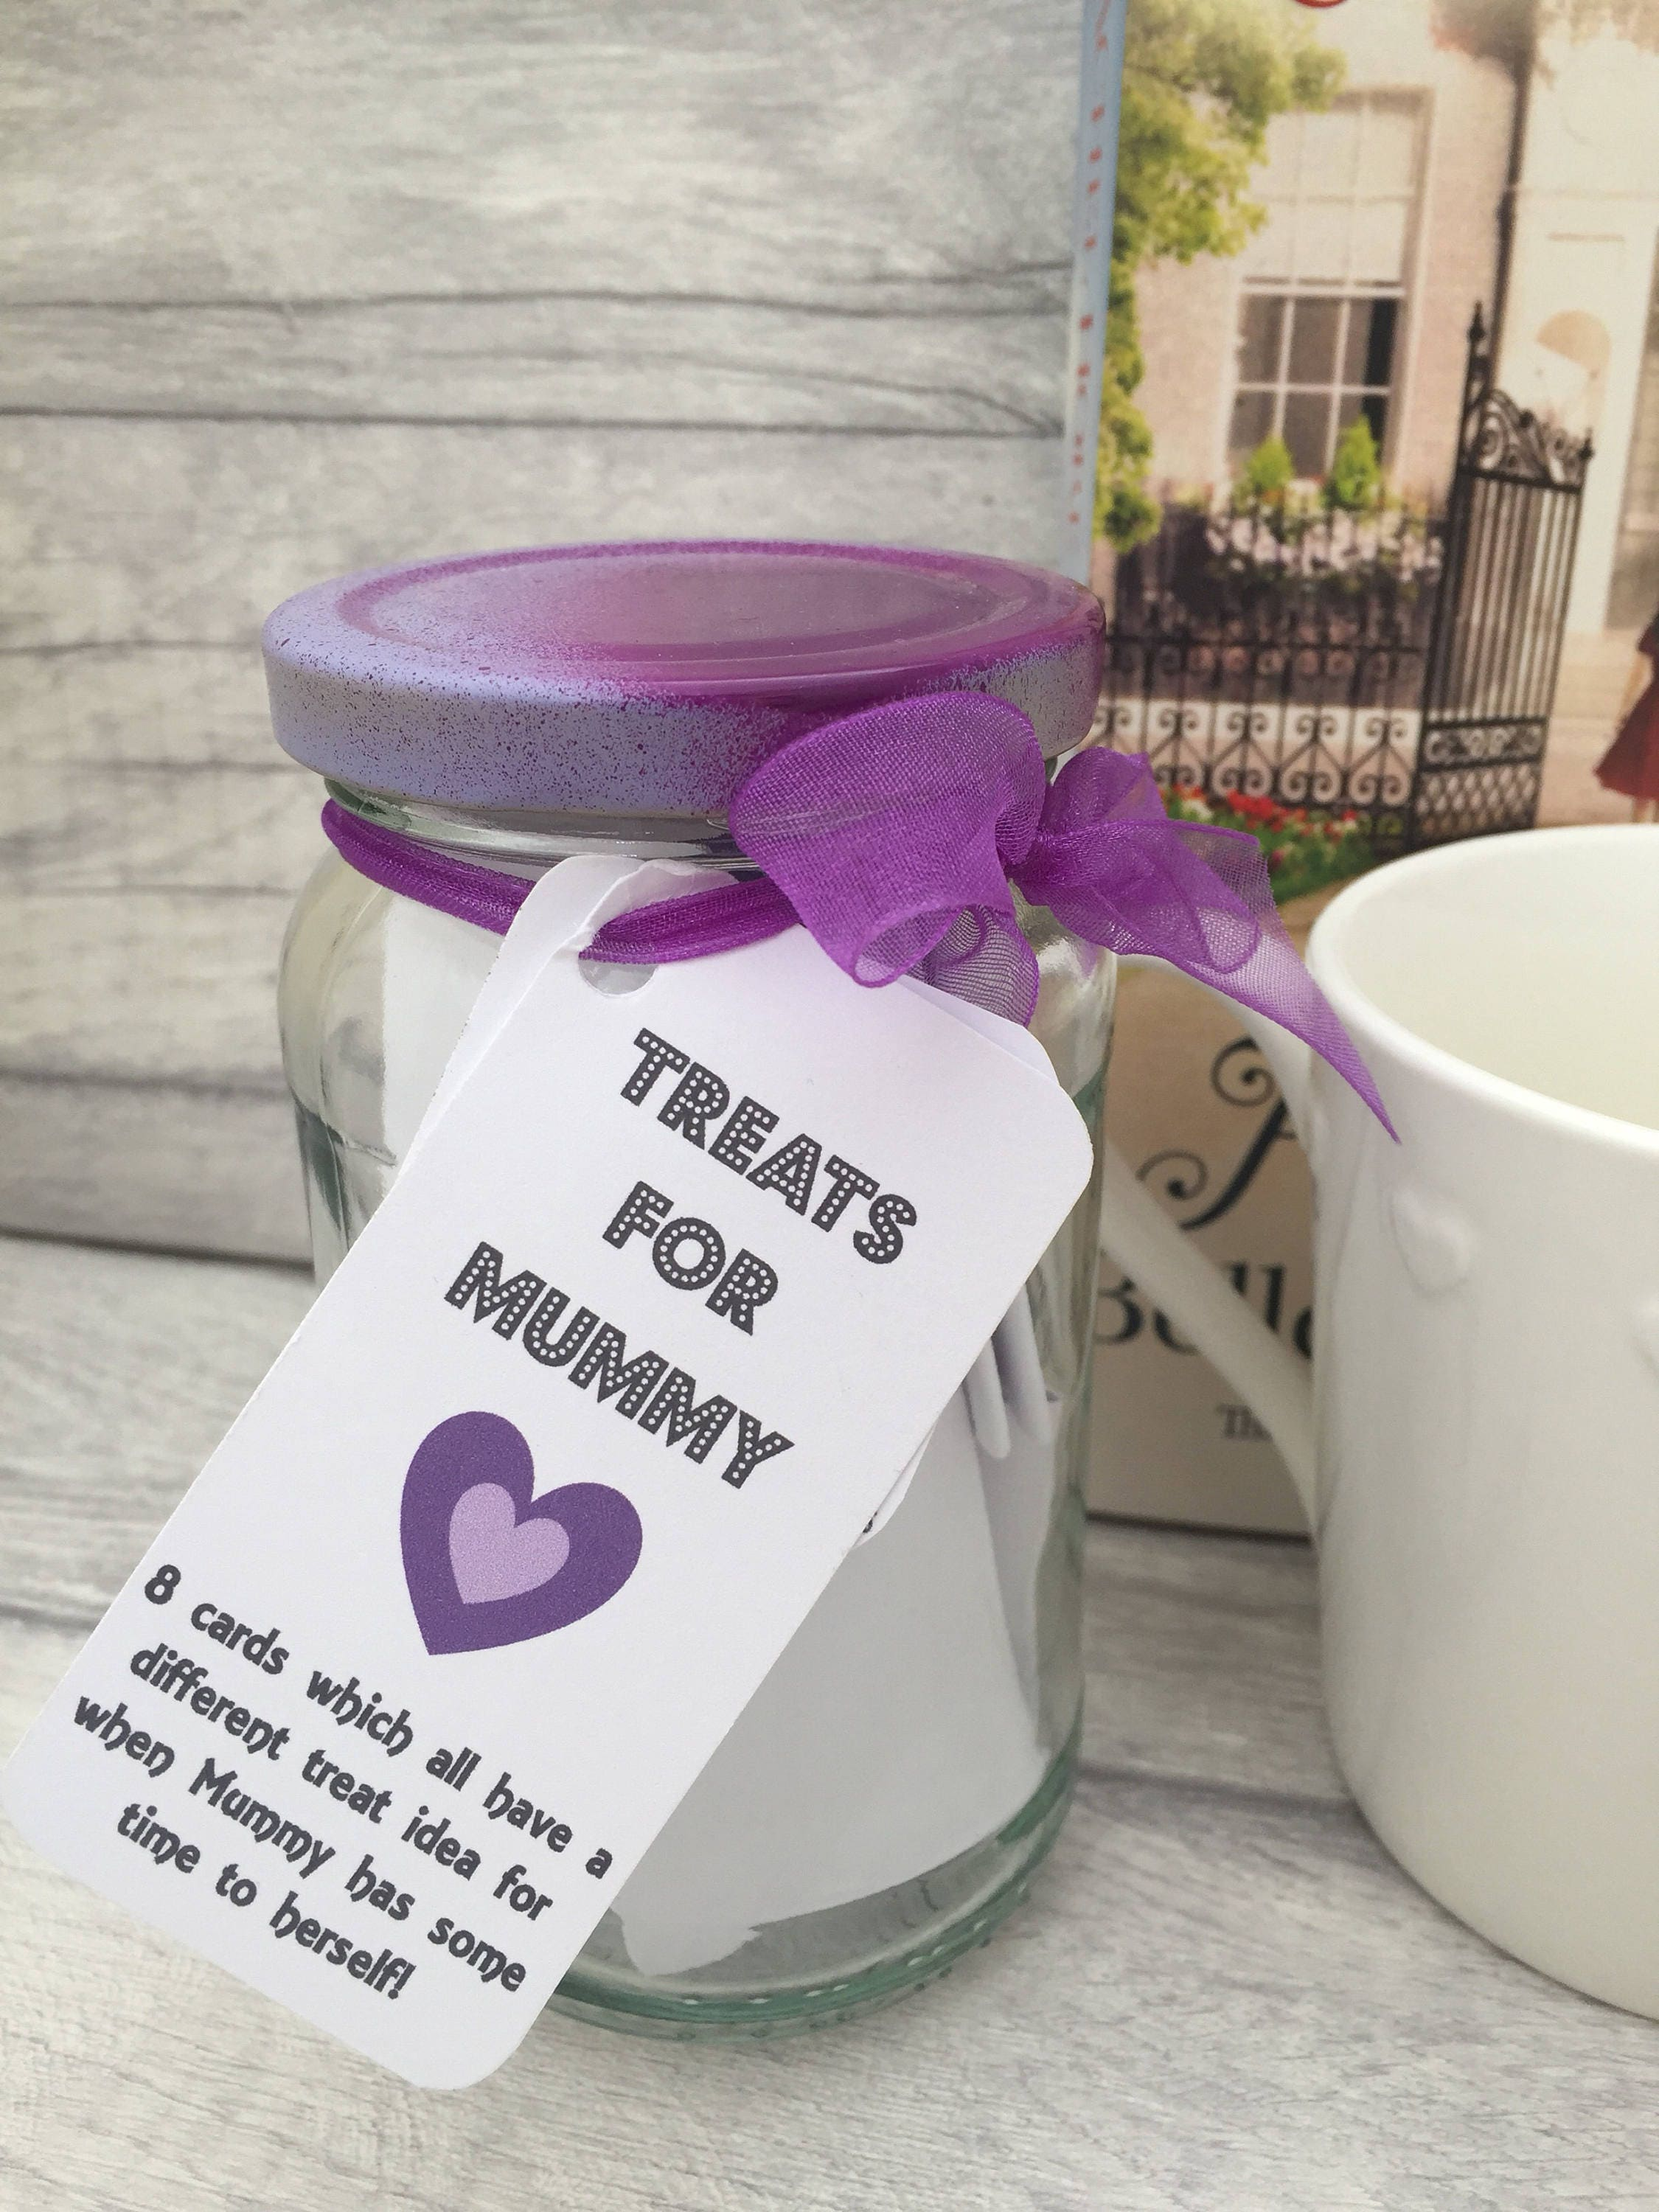 Treats for Mummy  Jam Packed Jars  Gift for Mums  Mummy Time  Thank You Mum